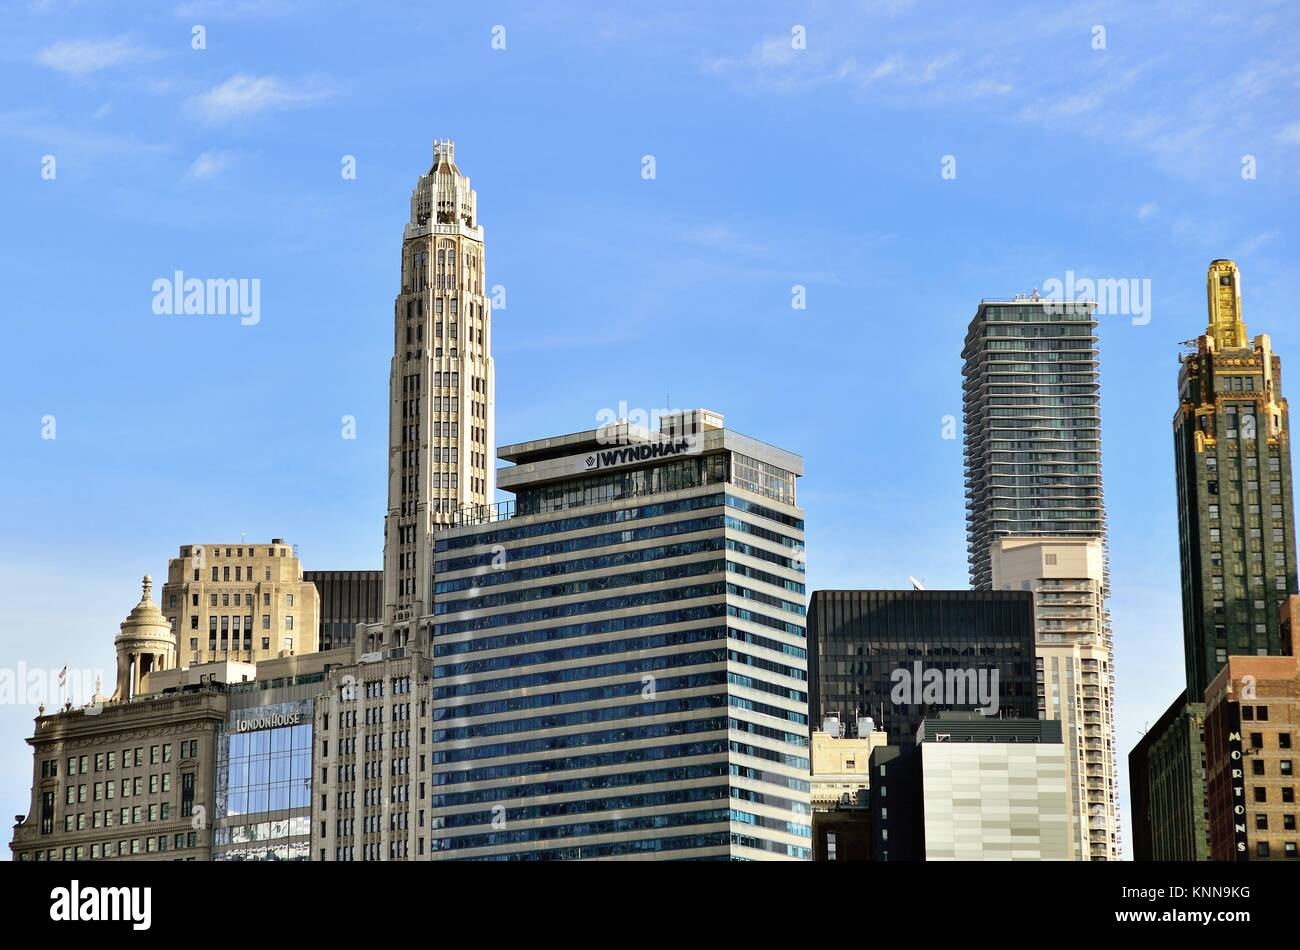 Contrasting architectural styles abound as eras coexist along the south bank of the Chicago River. Chicago, Illinois, - Stock Image